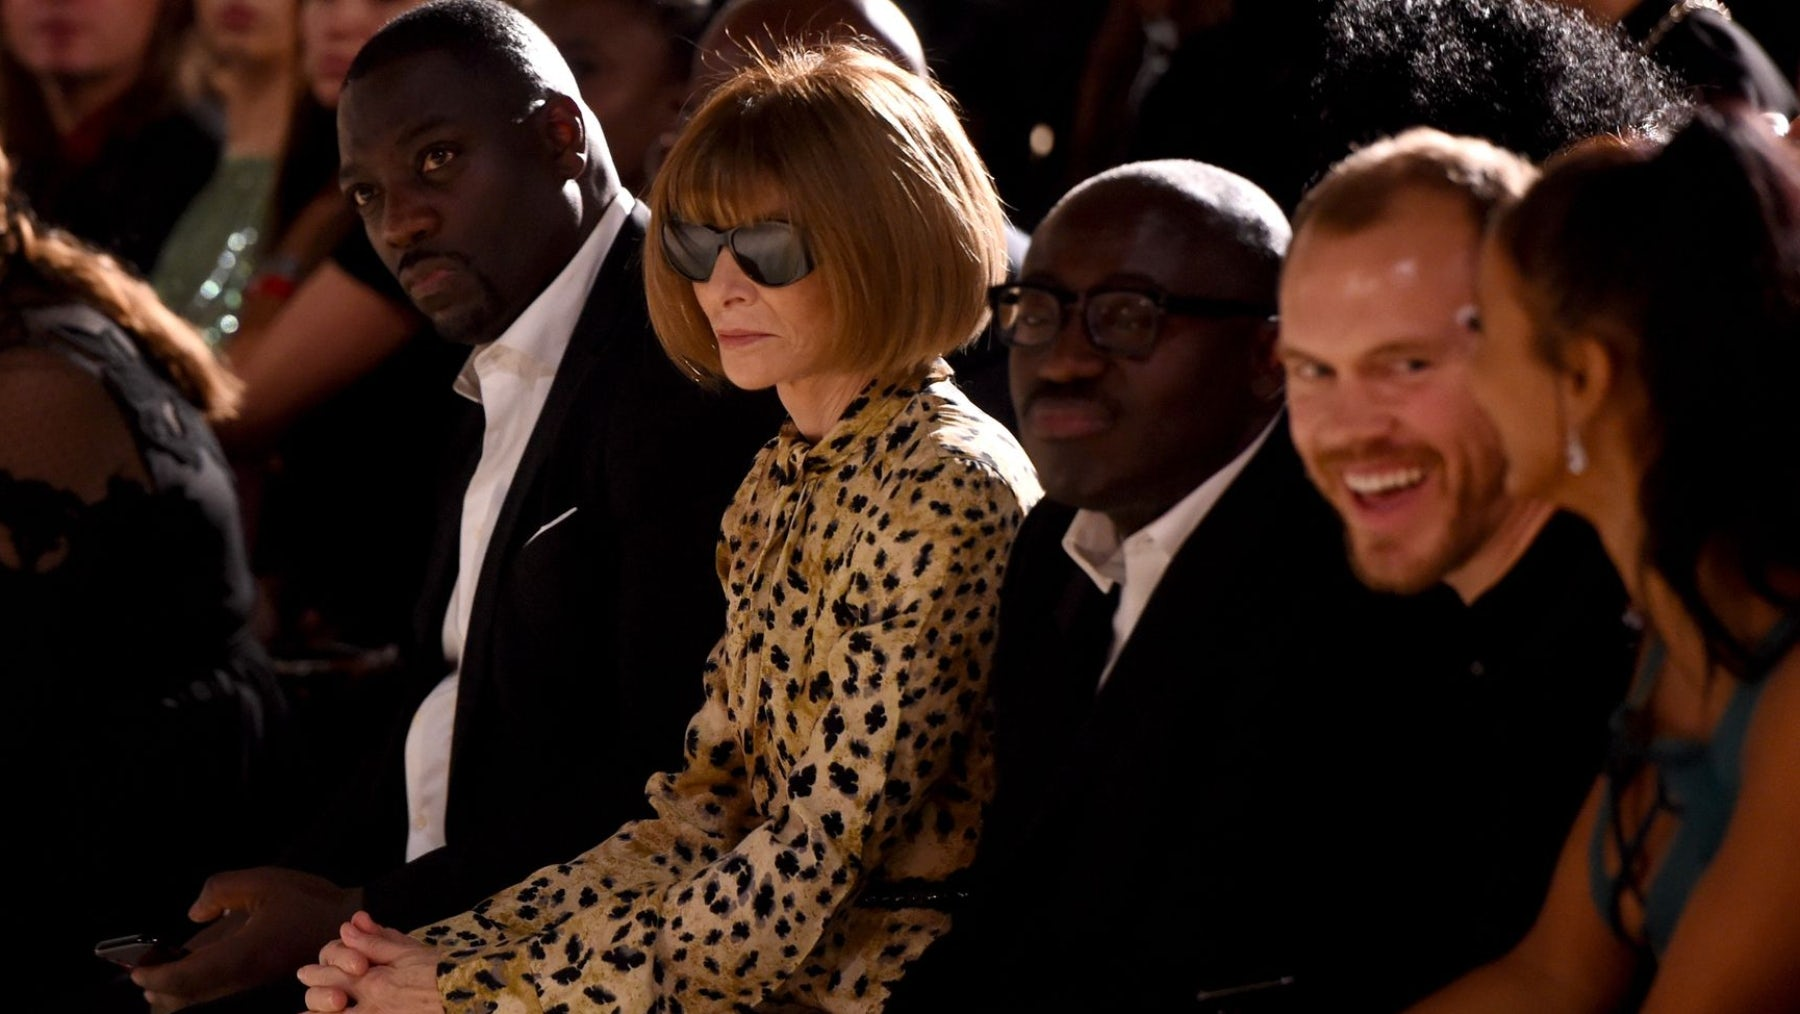 Anna Wintour and Edward Enninful in London. Getty Images.